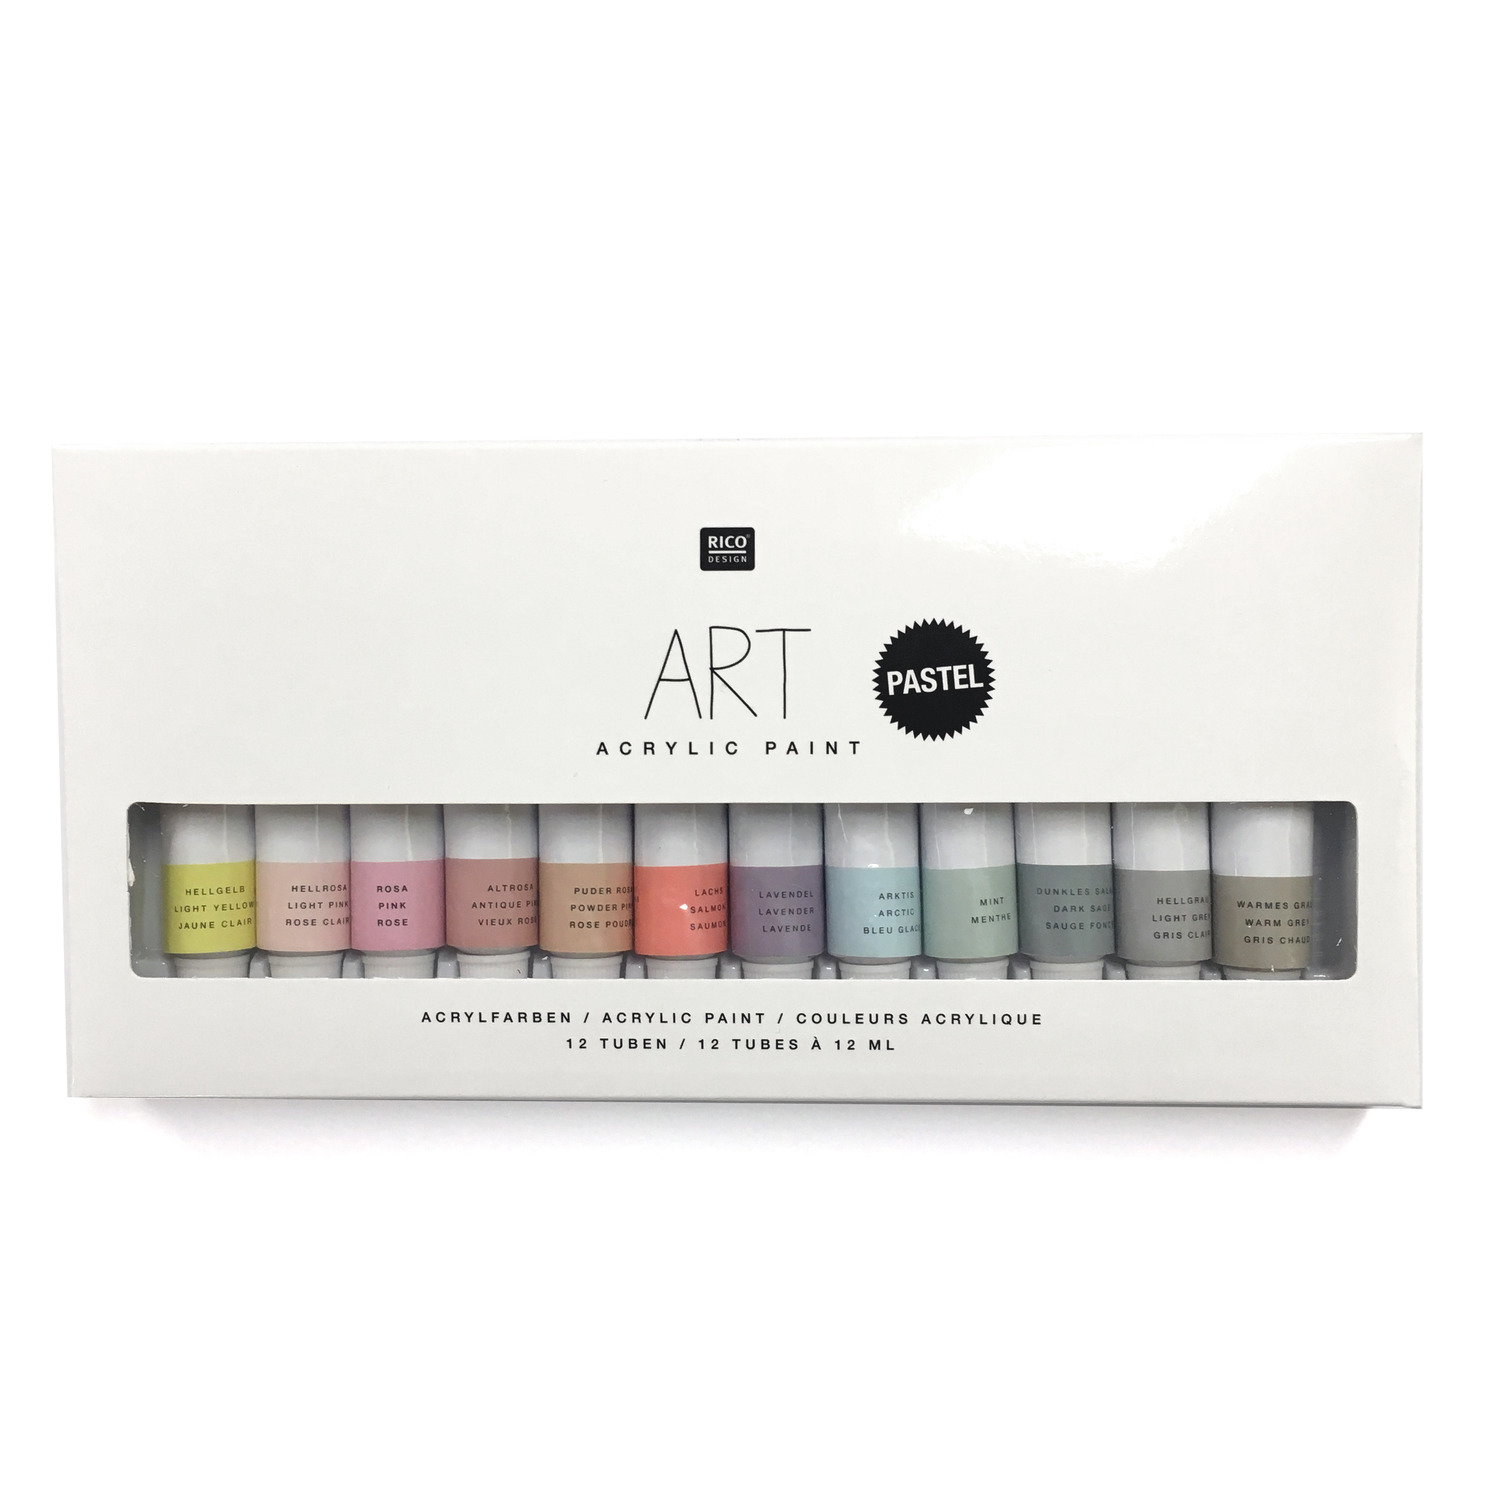 RicoDesignArtAcrylPaint12x12ml-01_big_image